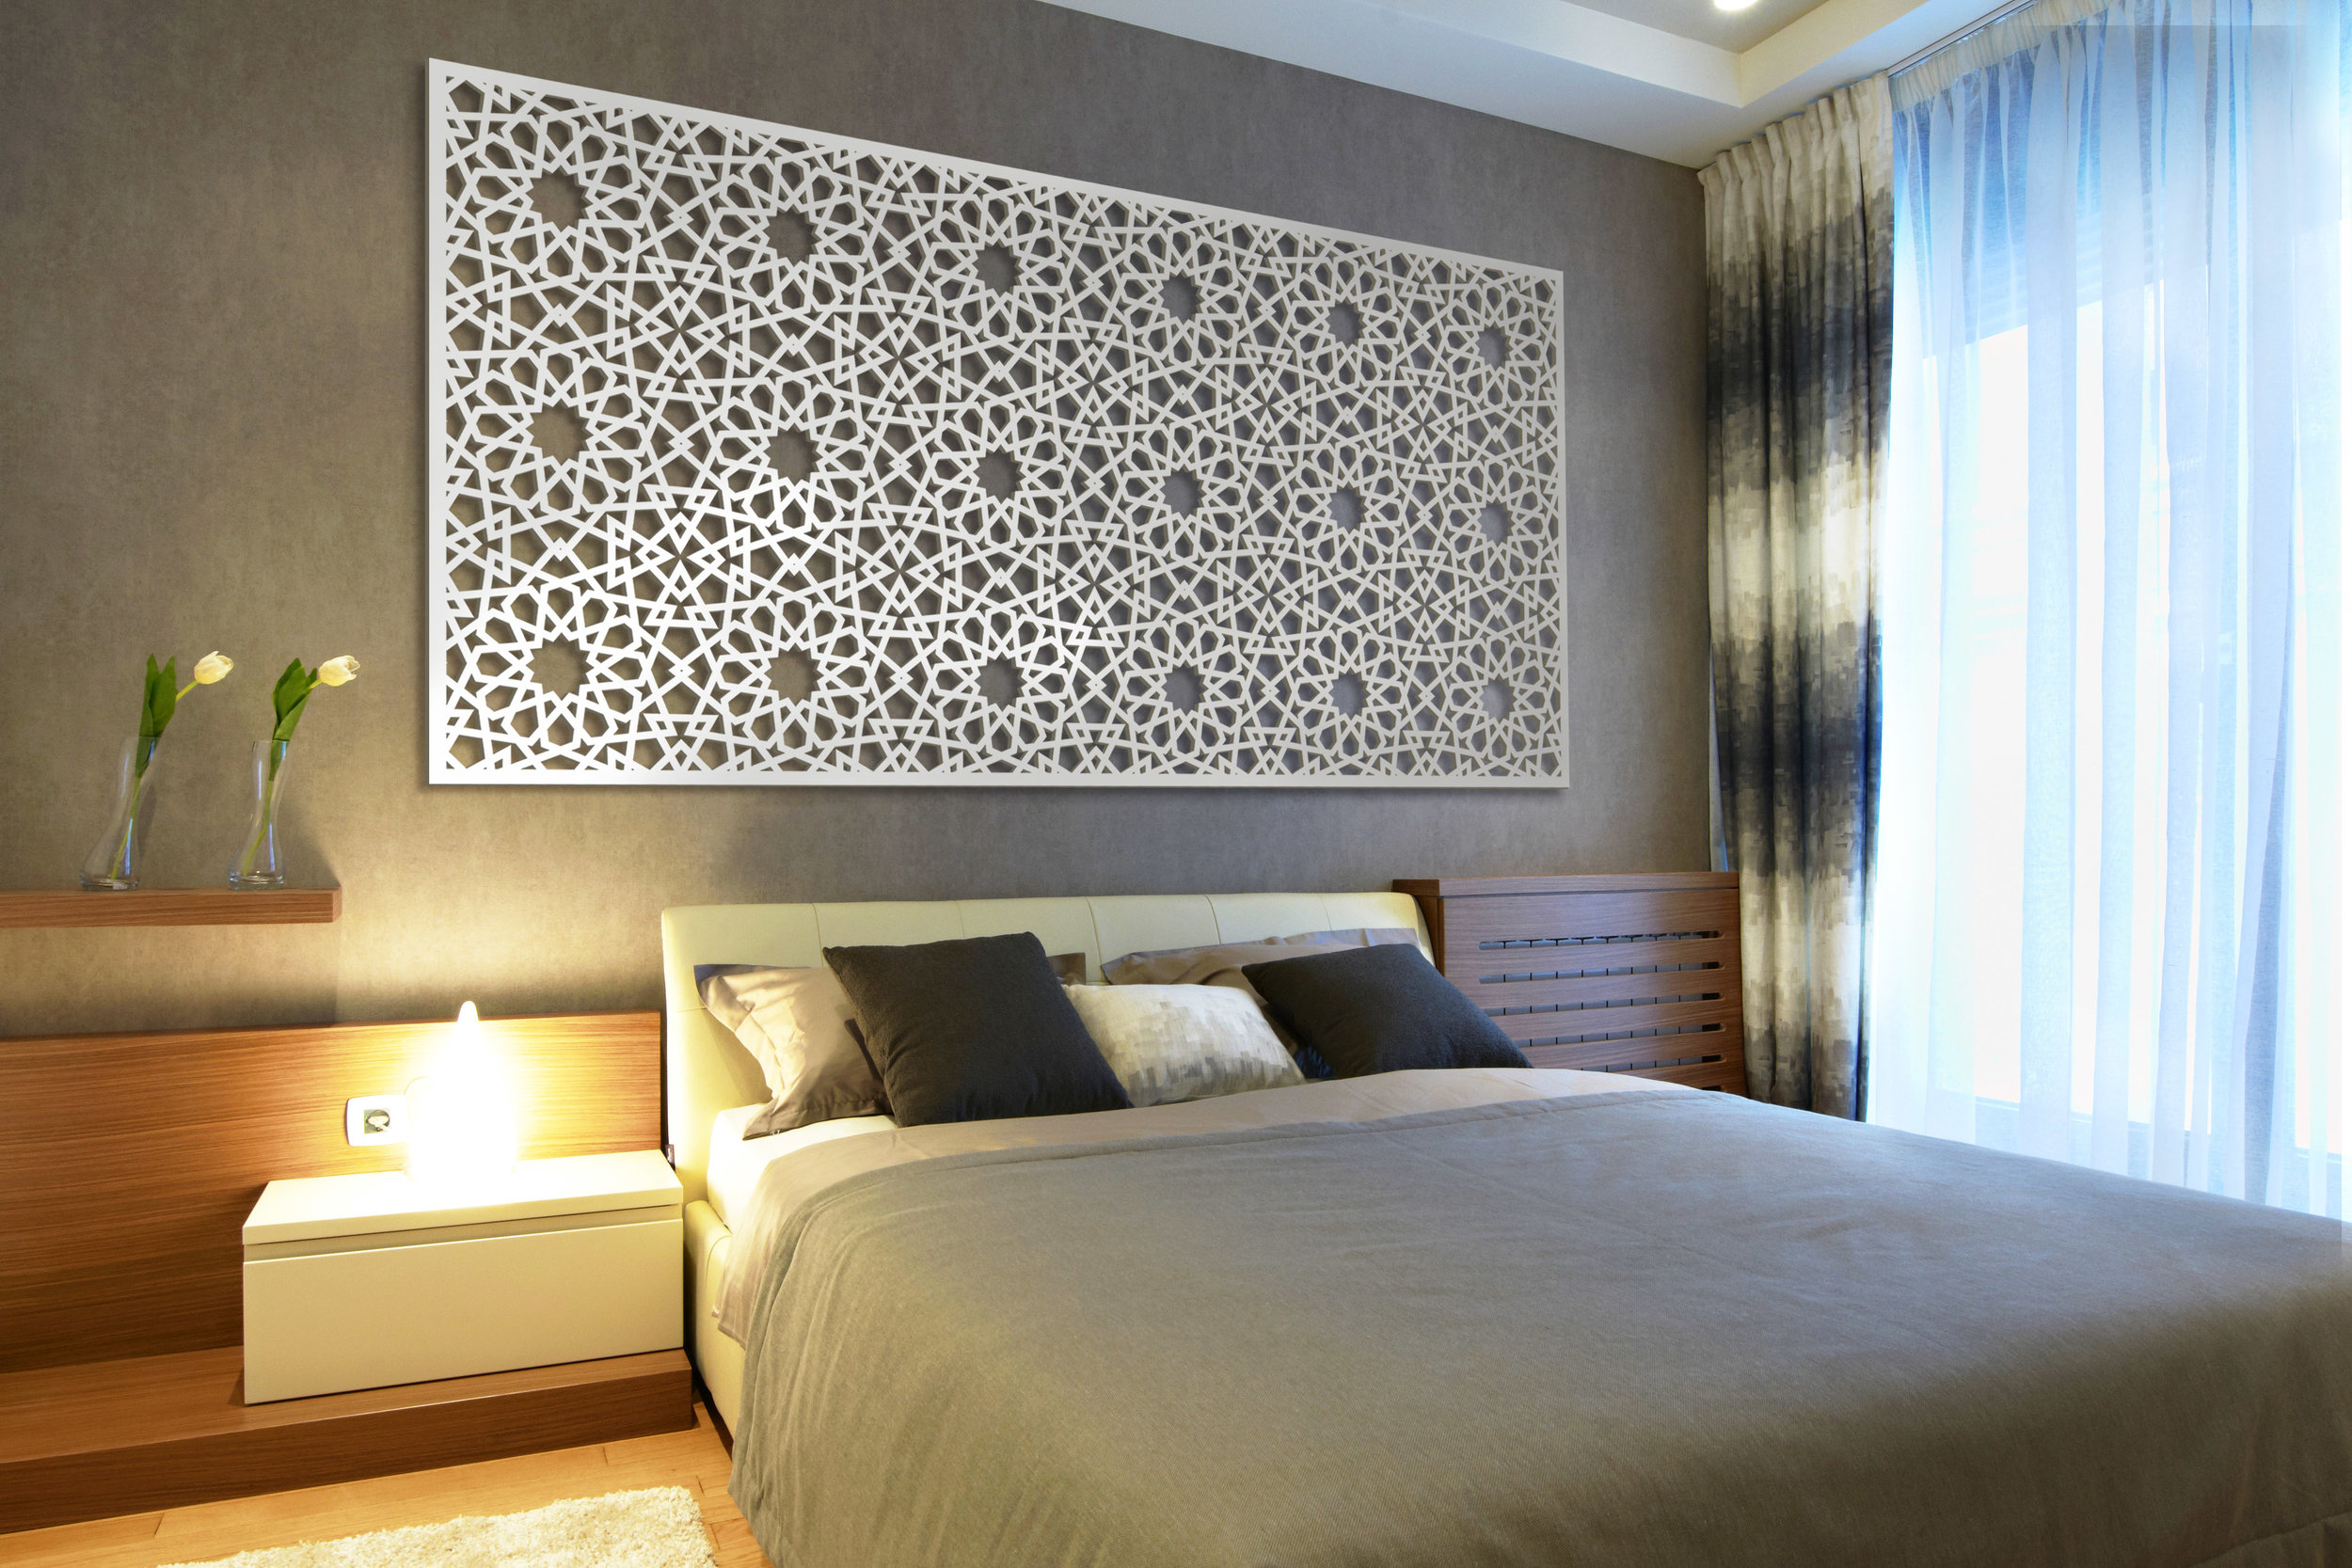 Installation Rendering B   Tunis decorative hotel wall panel - painted